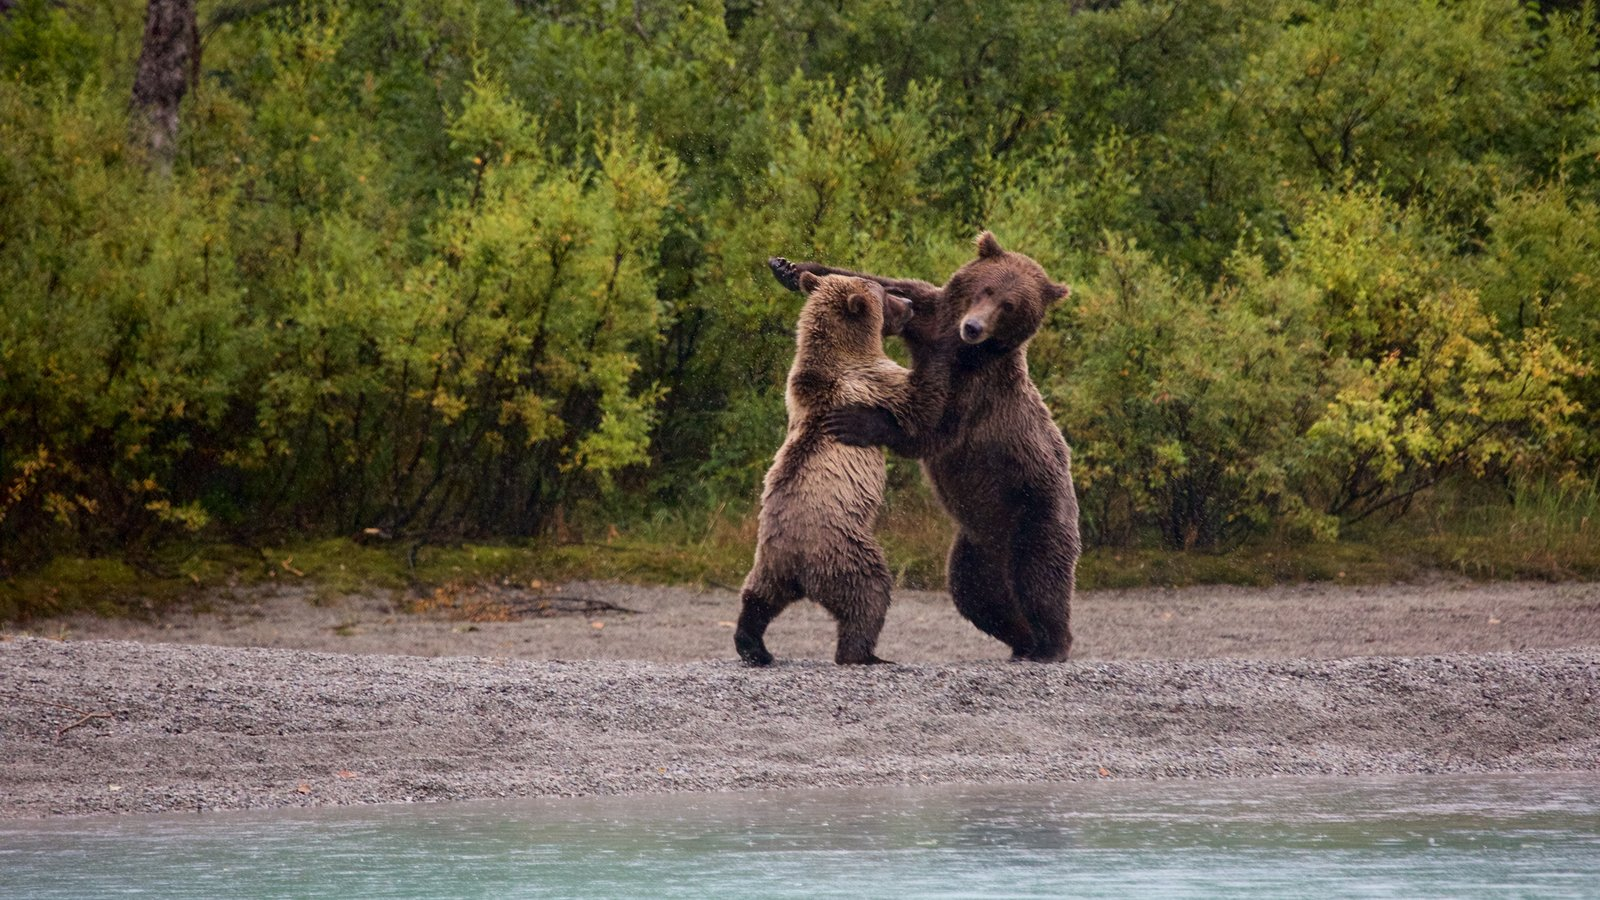 Lake Clark National Park and Preserve featuring dangerous animals and forests